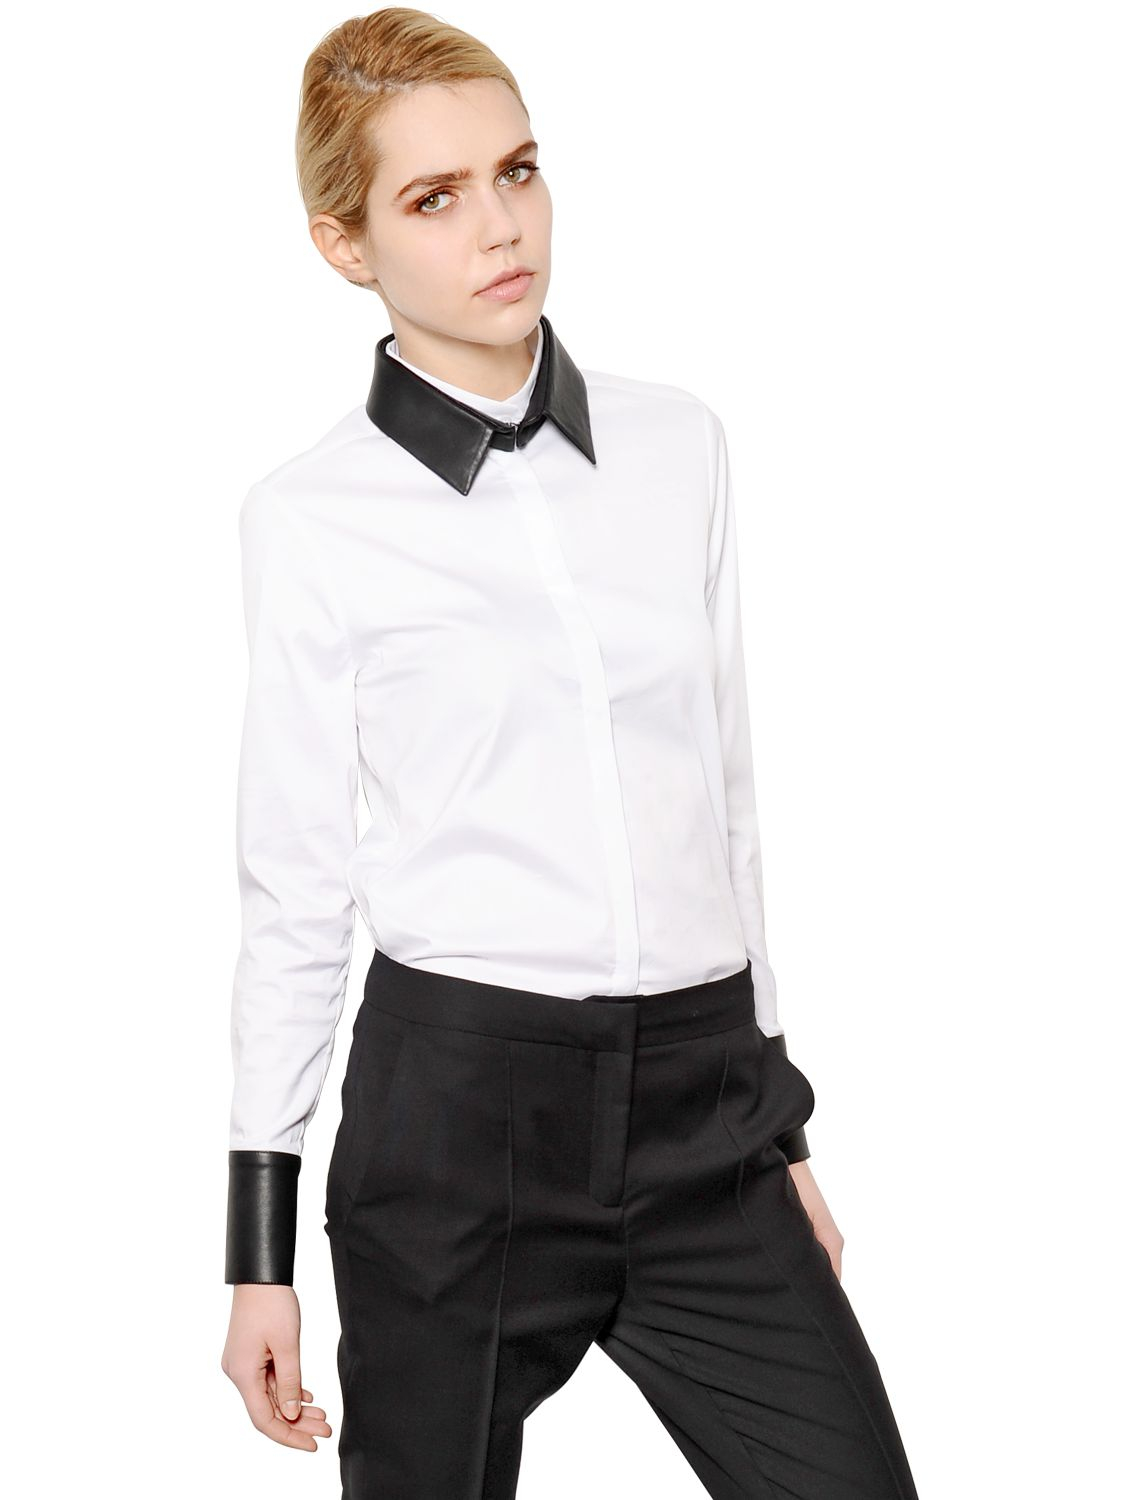 Karl lagerfeld cotton poplin shirt w faux leather trim in for Mens white leather shirt